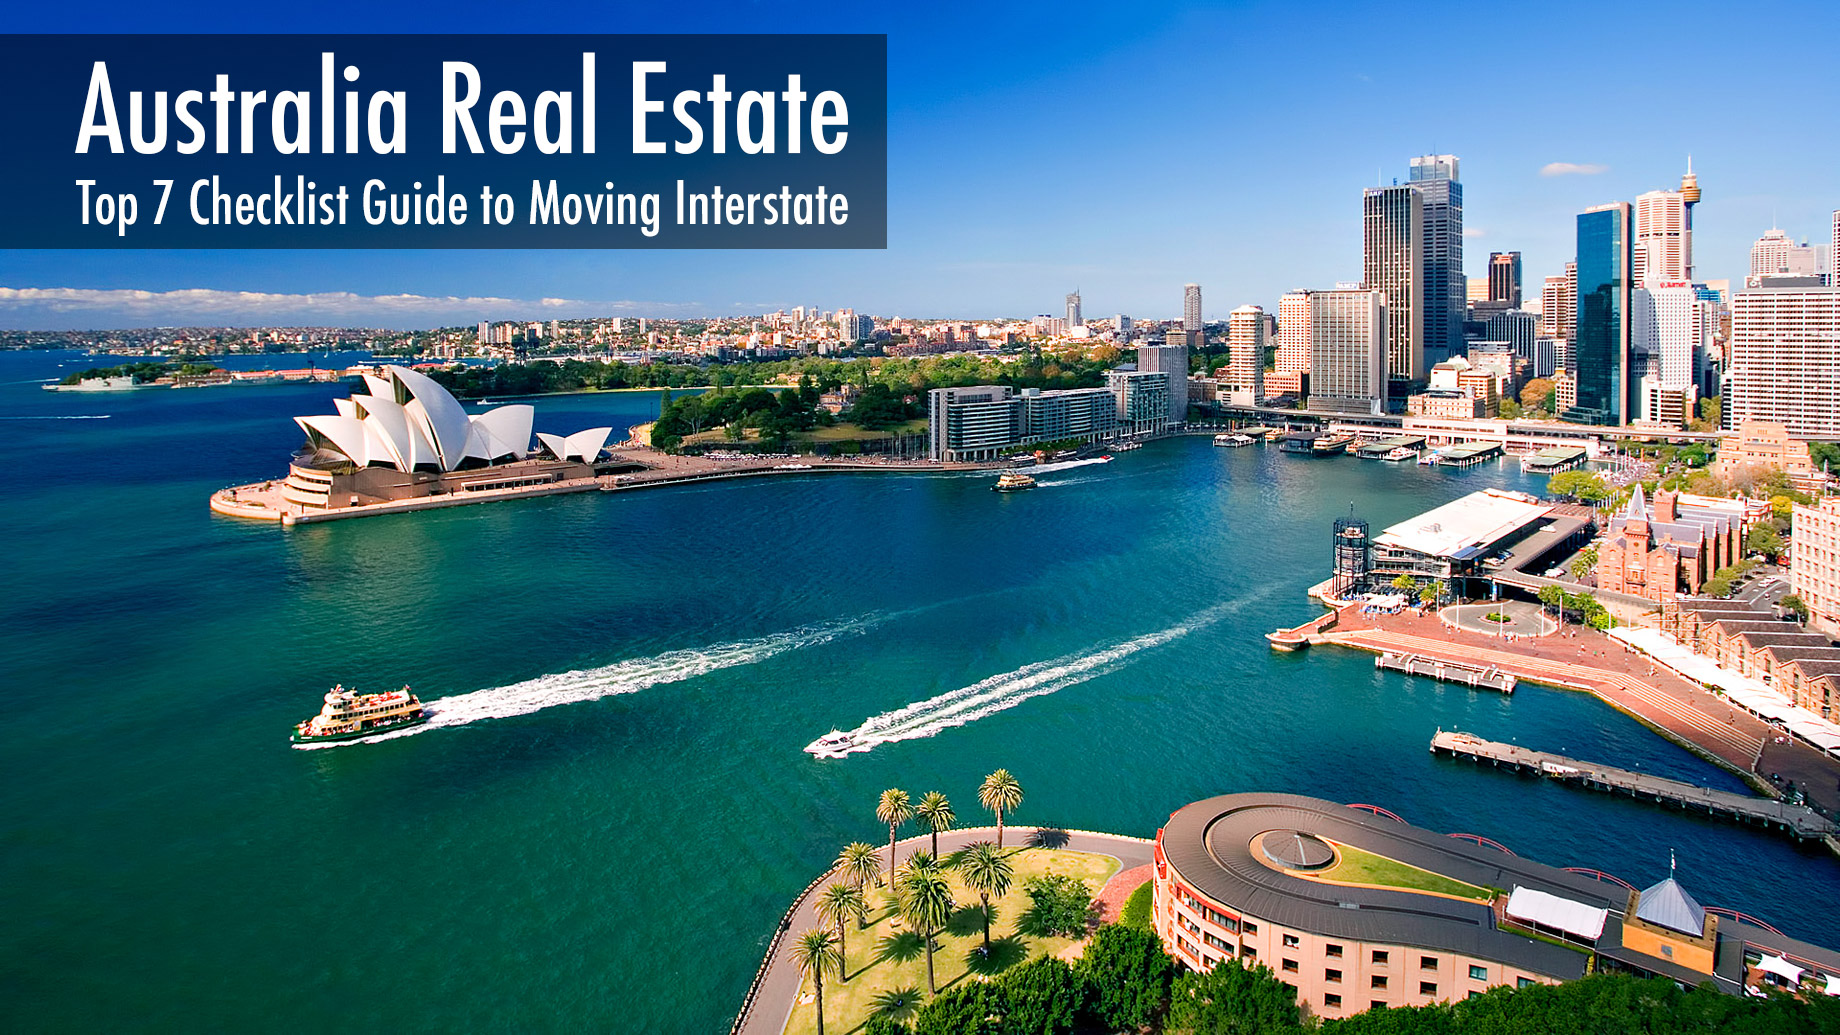 Australia Real Estate - Top 7 Checklist Guide to Moving Interstate